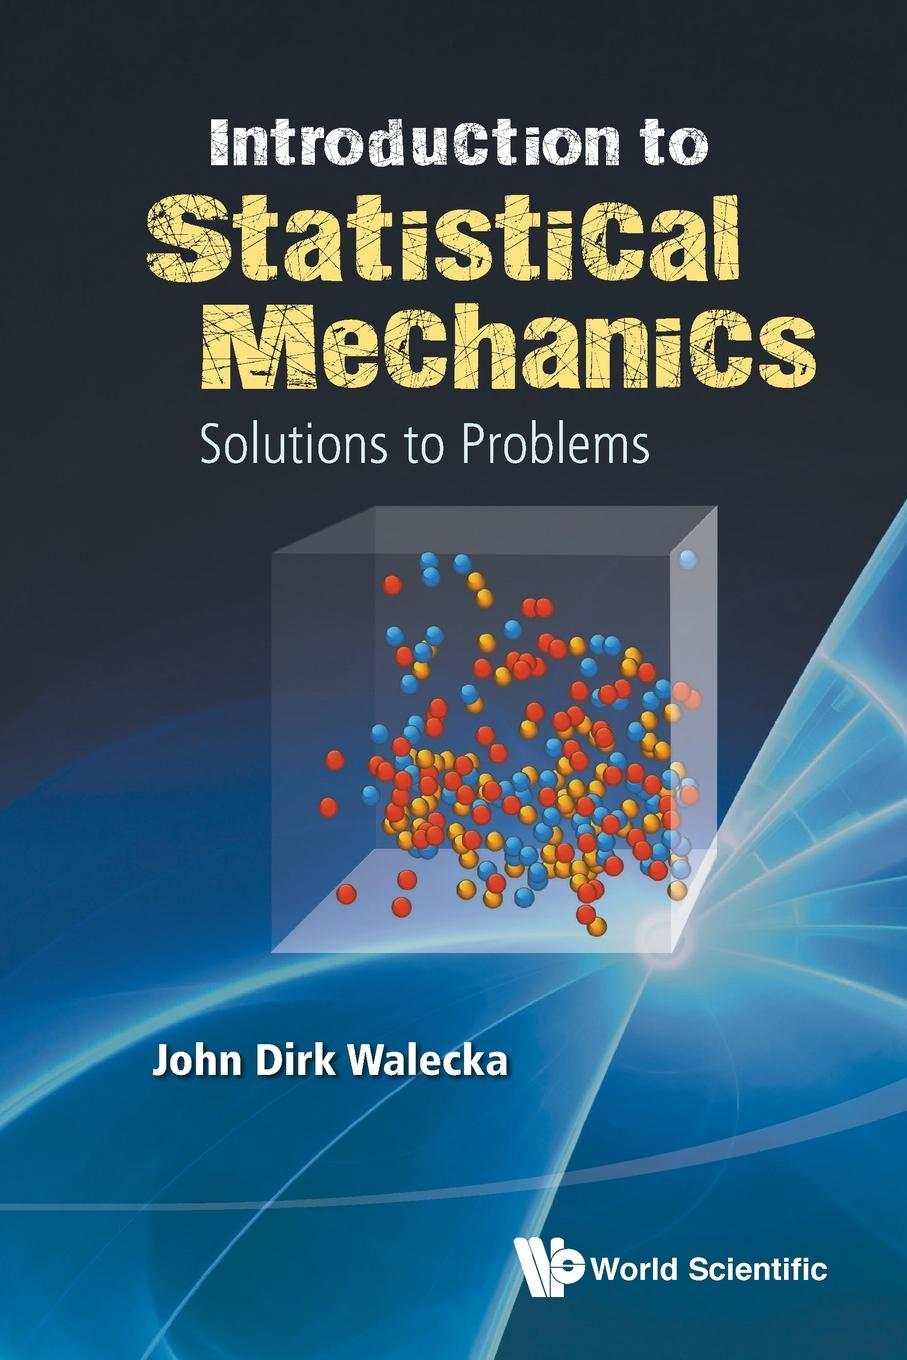 John Dirk Walecka INTRODUCTION TO STATISTICAL MECHANICS. SOLUTIONS TO PROBLEMS nikolaos limnios earthquake statistical analysis through multi state modeling